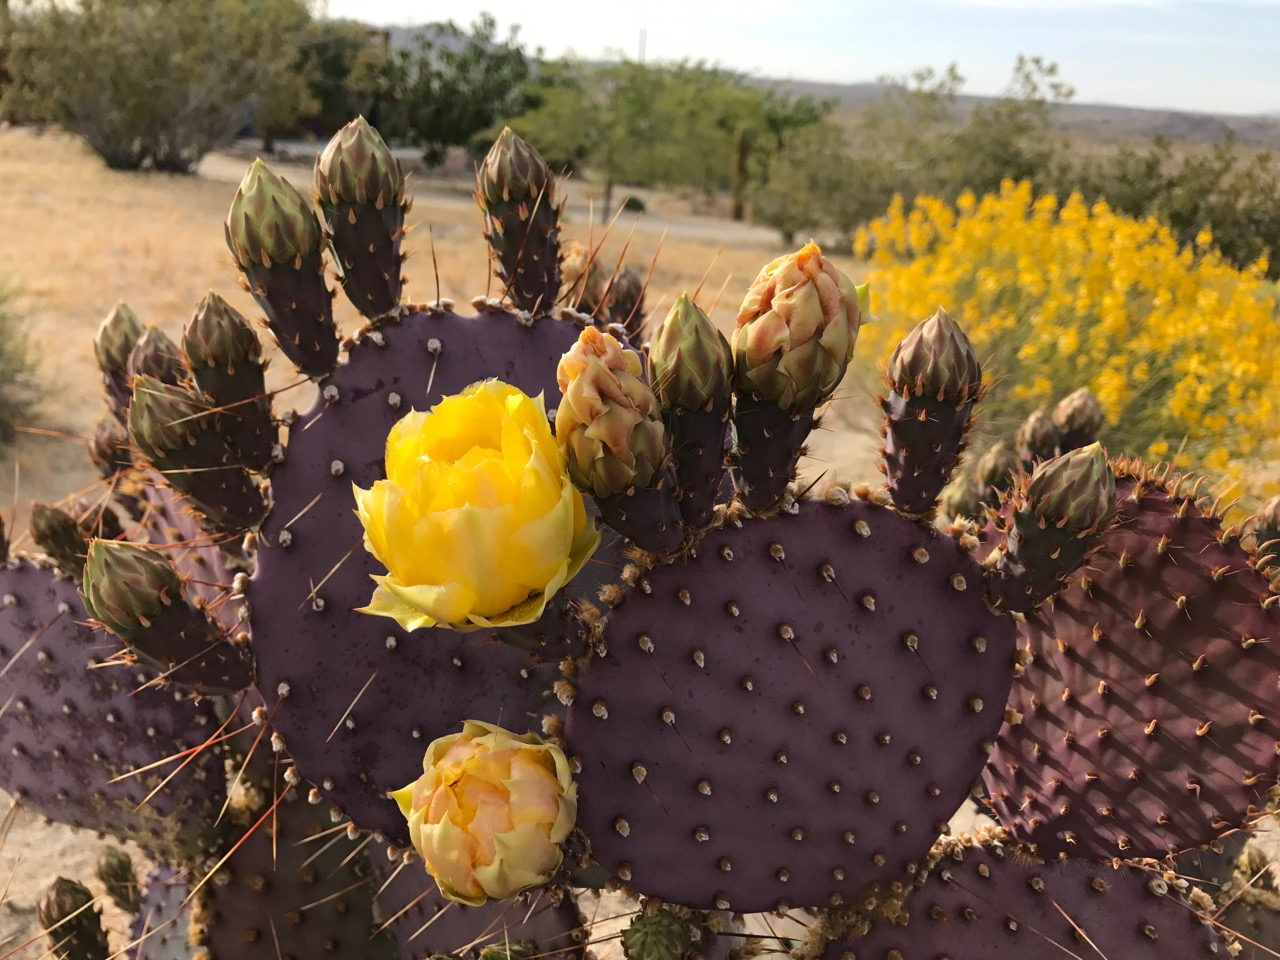 purple_cactus_yellow_bloom.jpg